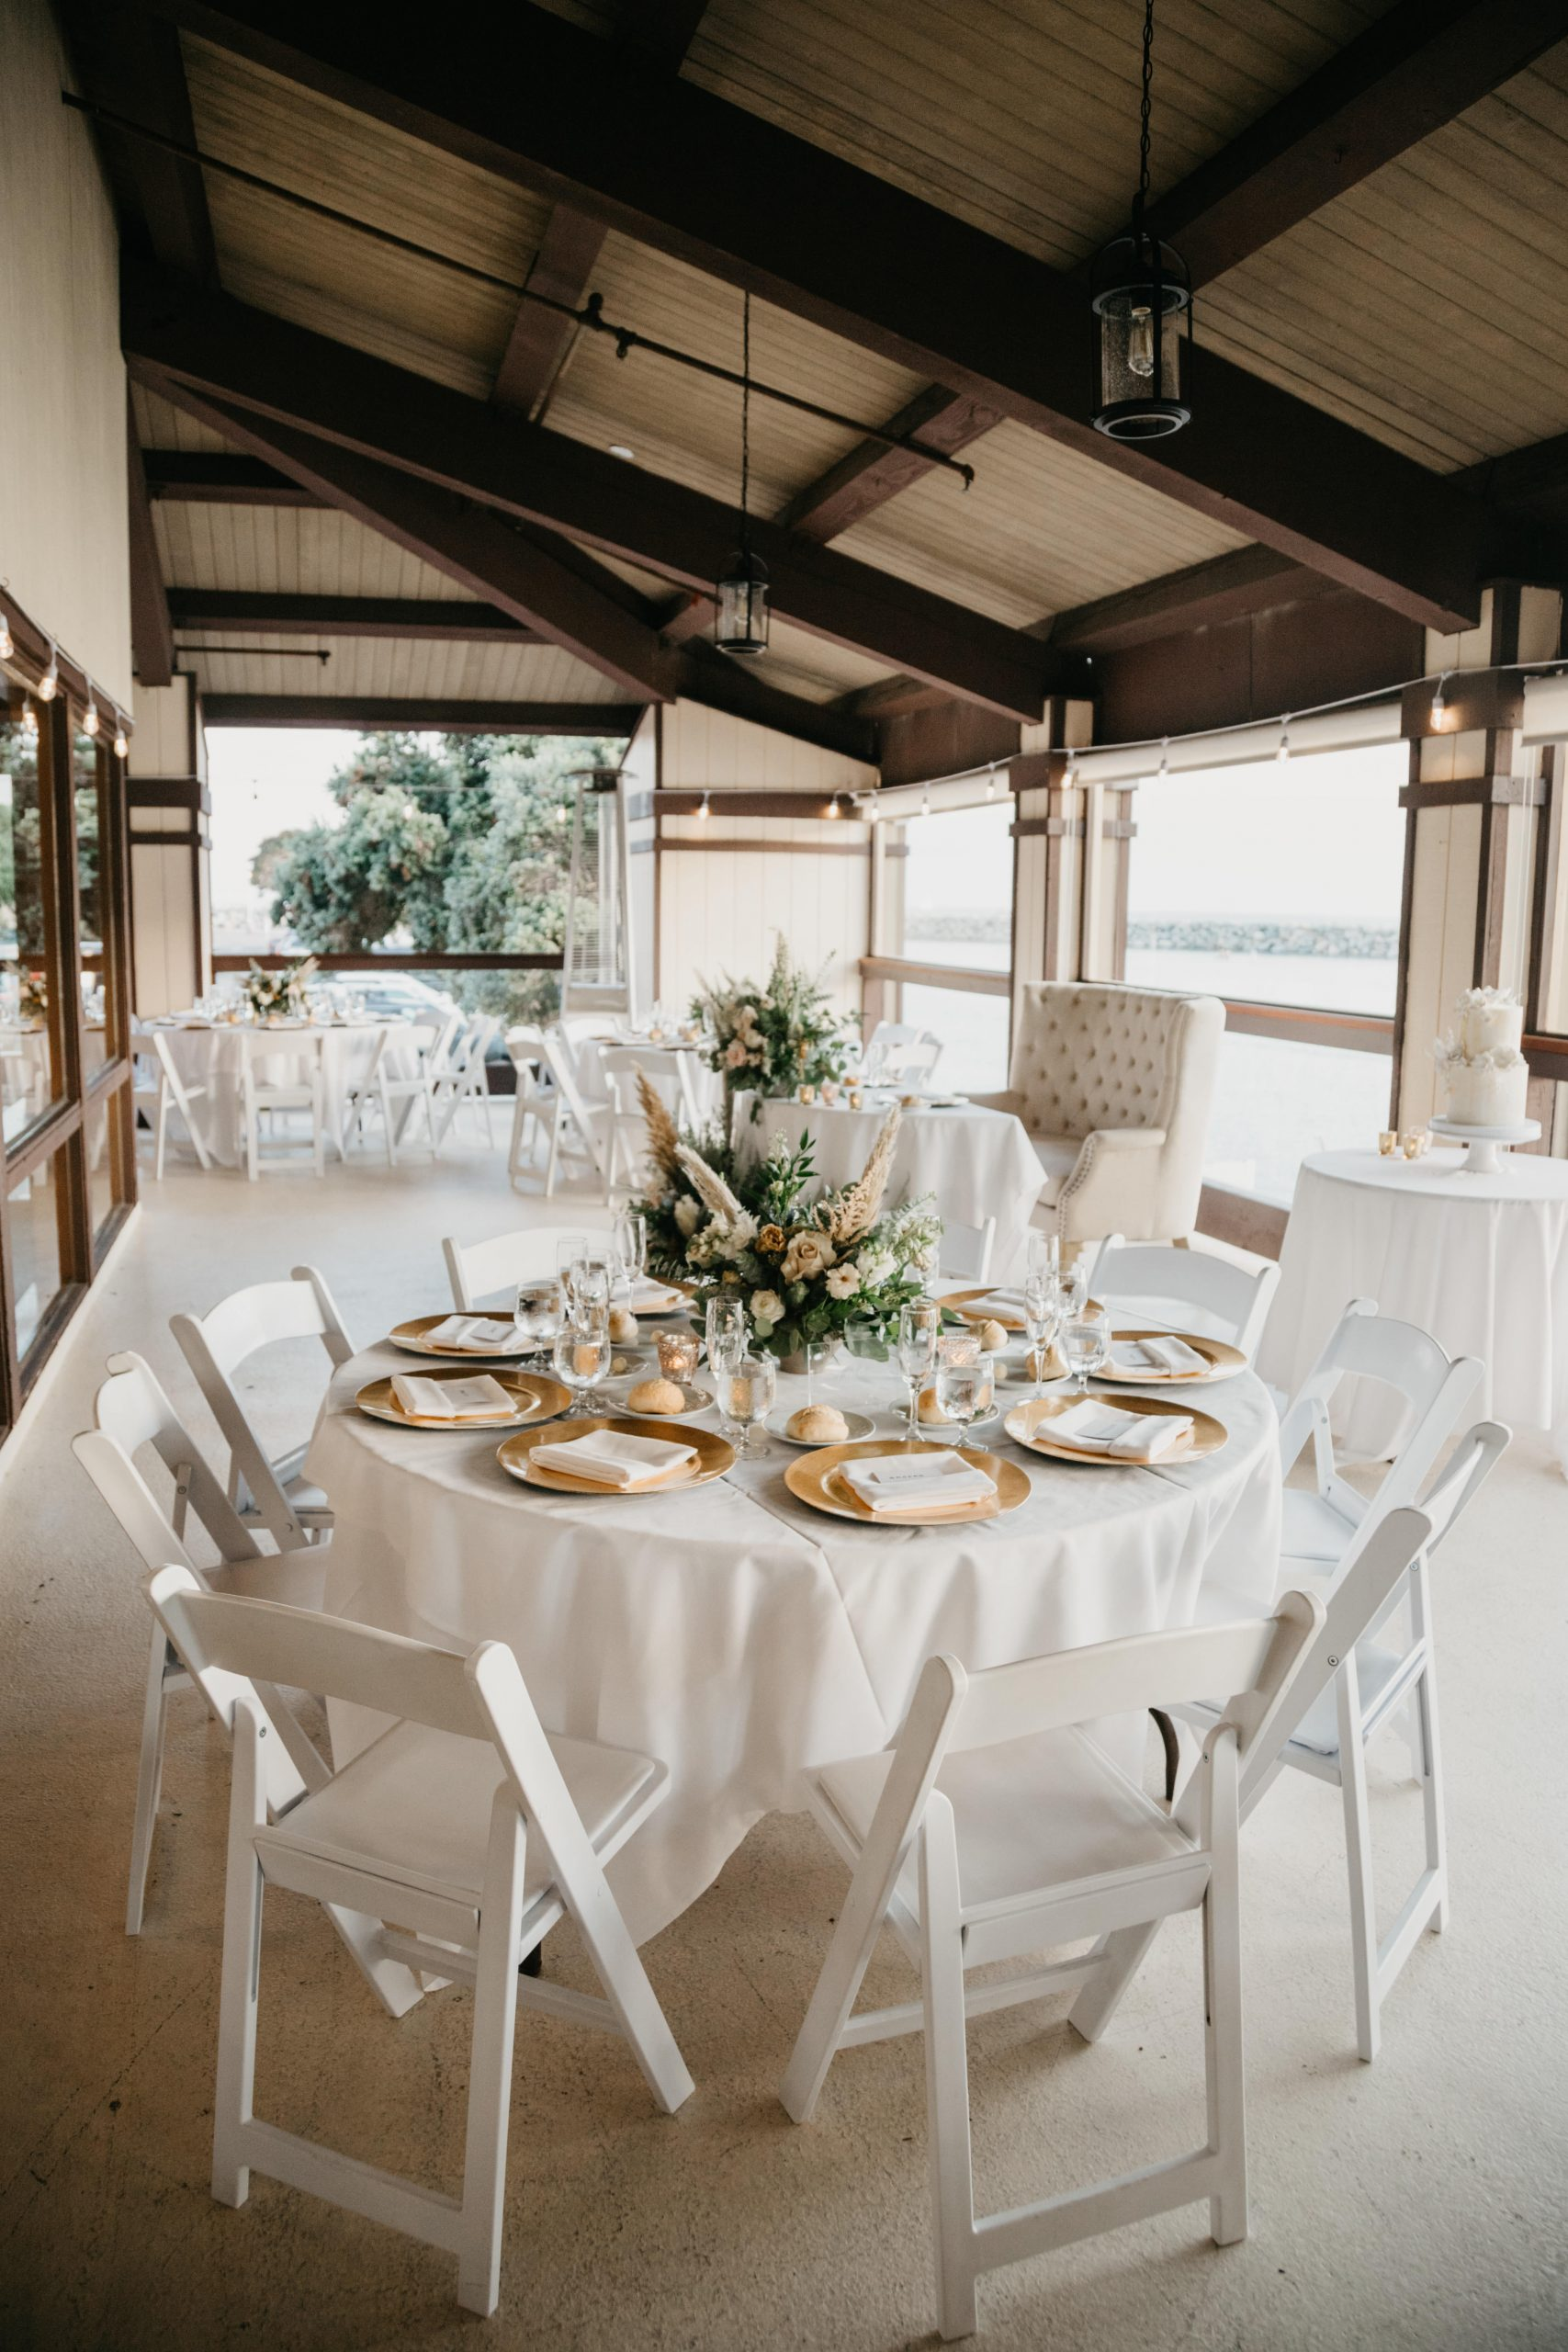 Elegant table set up at Dana Point Yacht Club, The Montage Laguna Beach Wedding Bridal Portraits, image by Fatima Elreda Photo